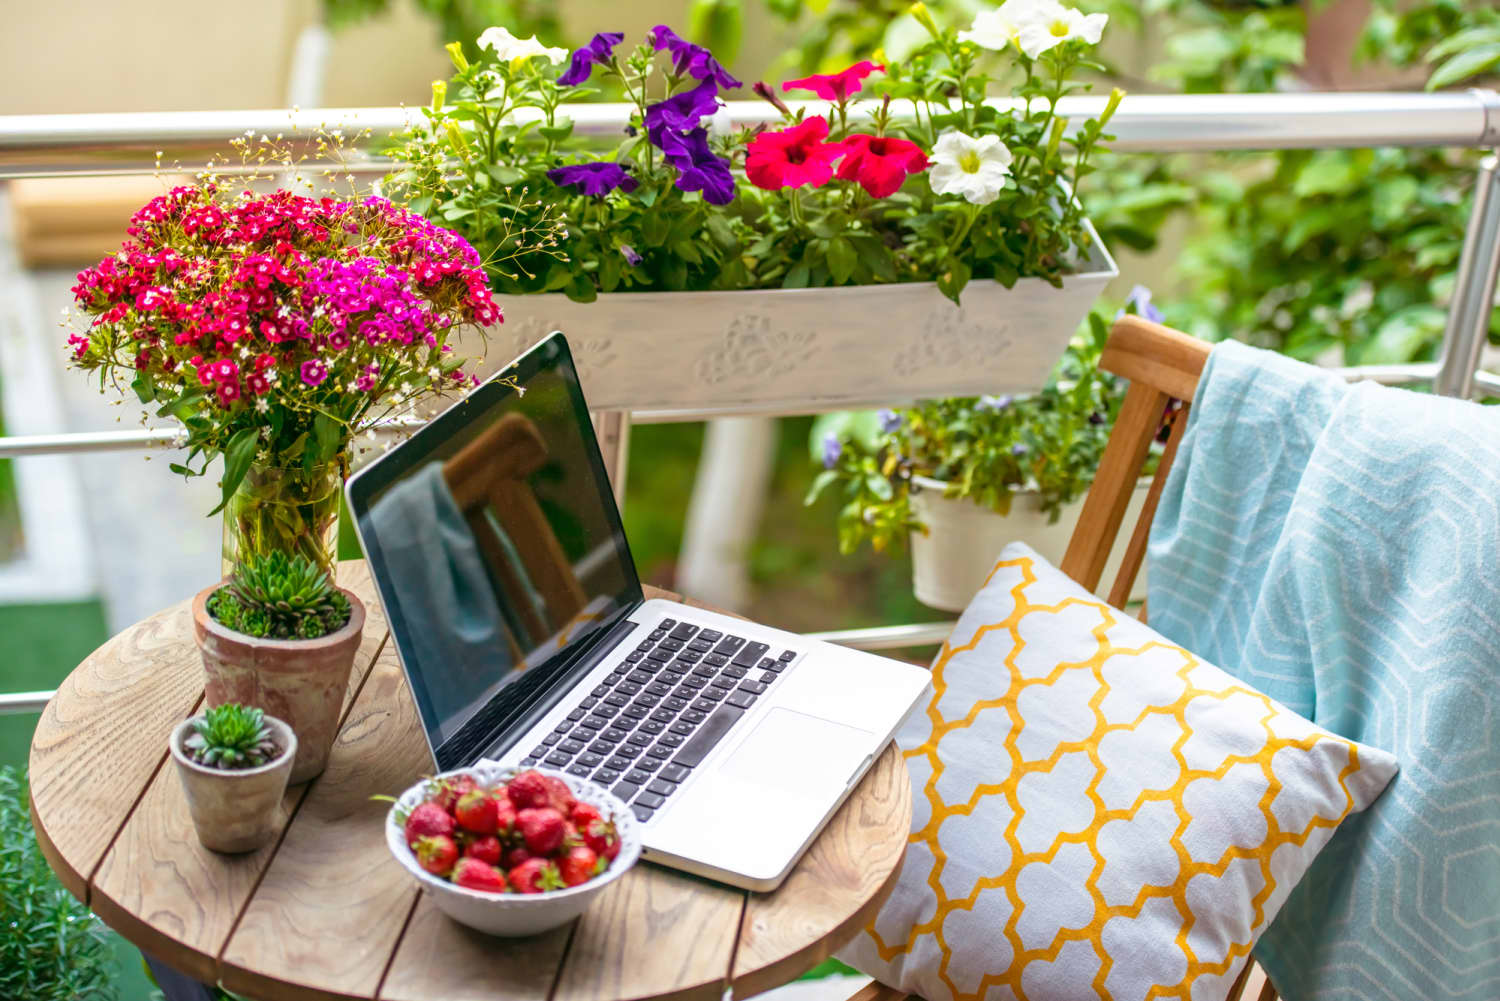 6 Remote Job Boards to Check Out if Working From Home Is Your Long-Term Goal